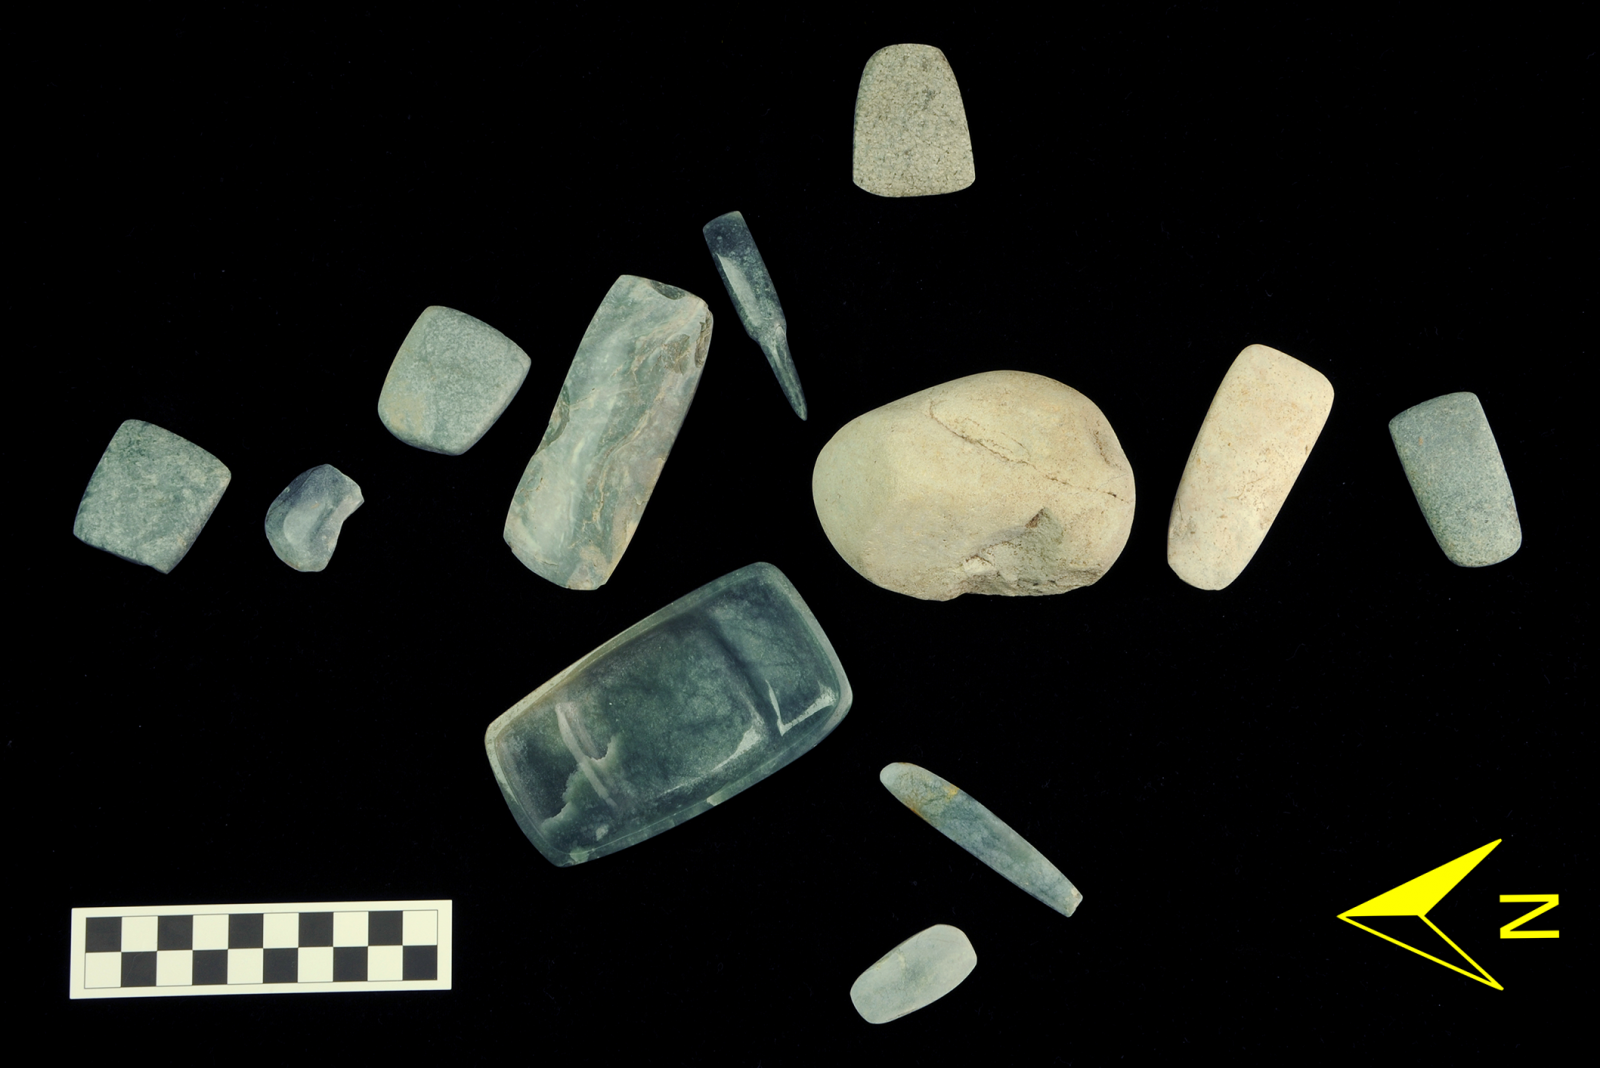 Treasure trove of jade stones used in Mayan rituals discovered in Guatemala